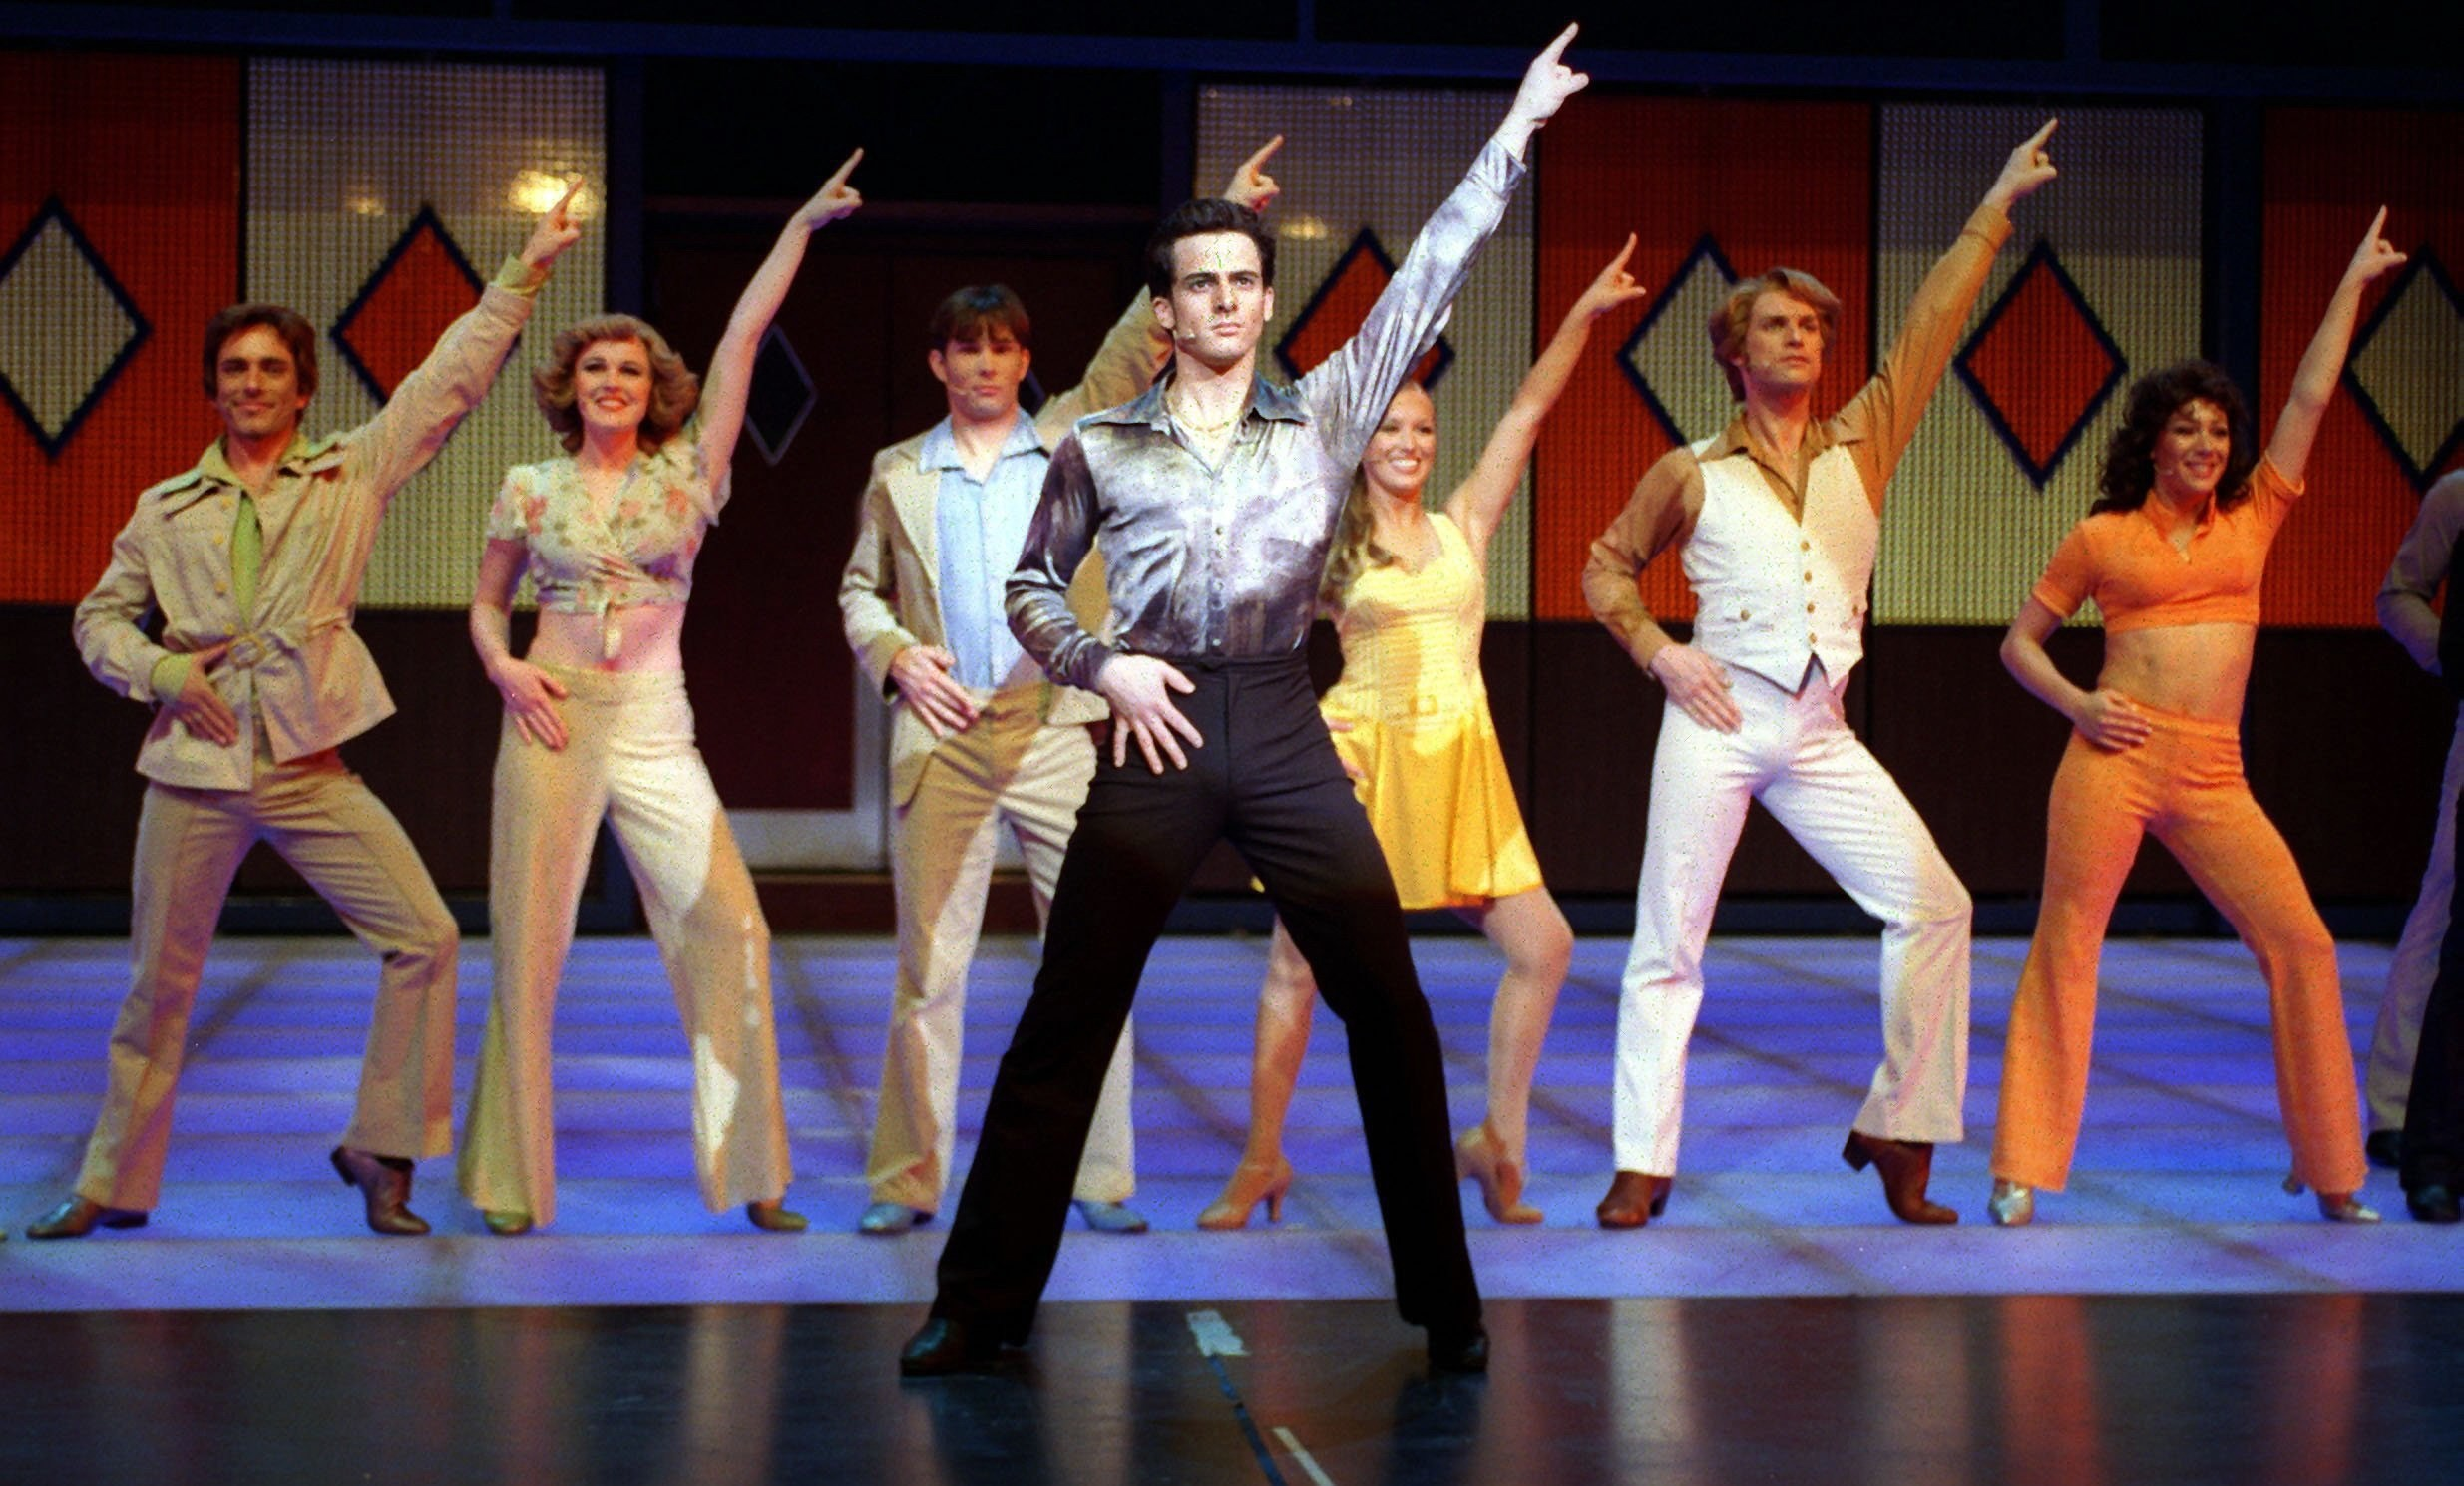 2470x1490 saturday night fever the musical pic - Full HD Wallpapers, Photos by Hazel  Backer (